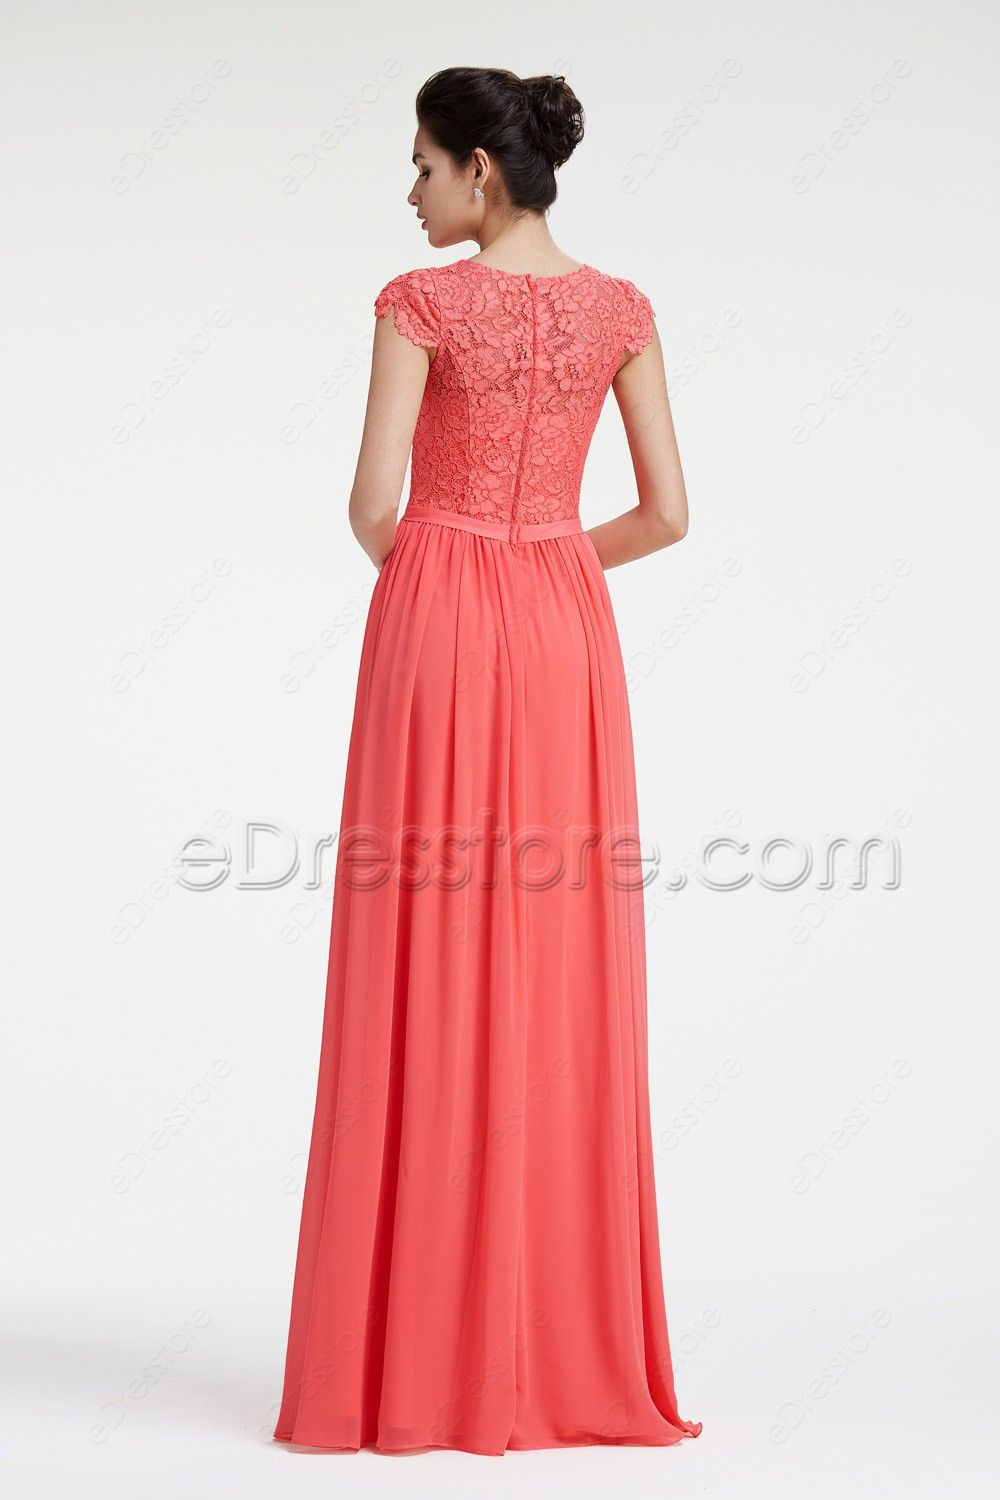 Modest Lace Coral Bridesmaid Dresses with Sleeves | Modest ...